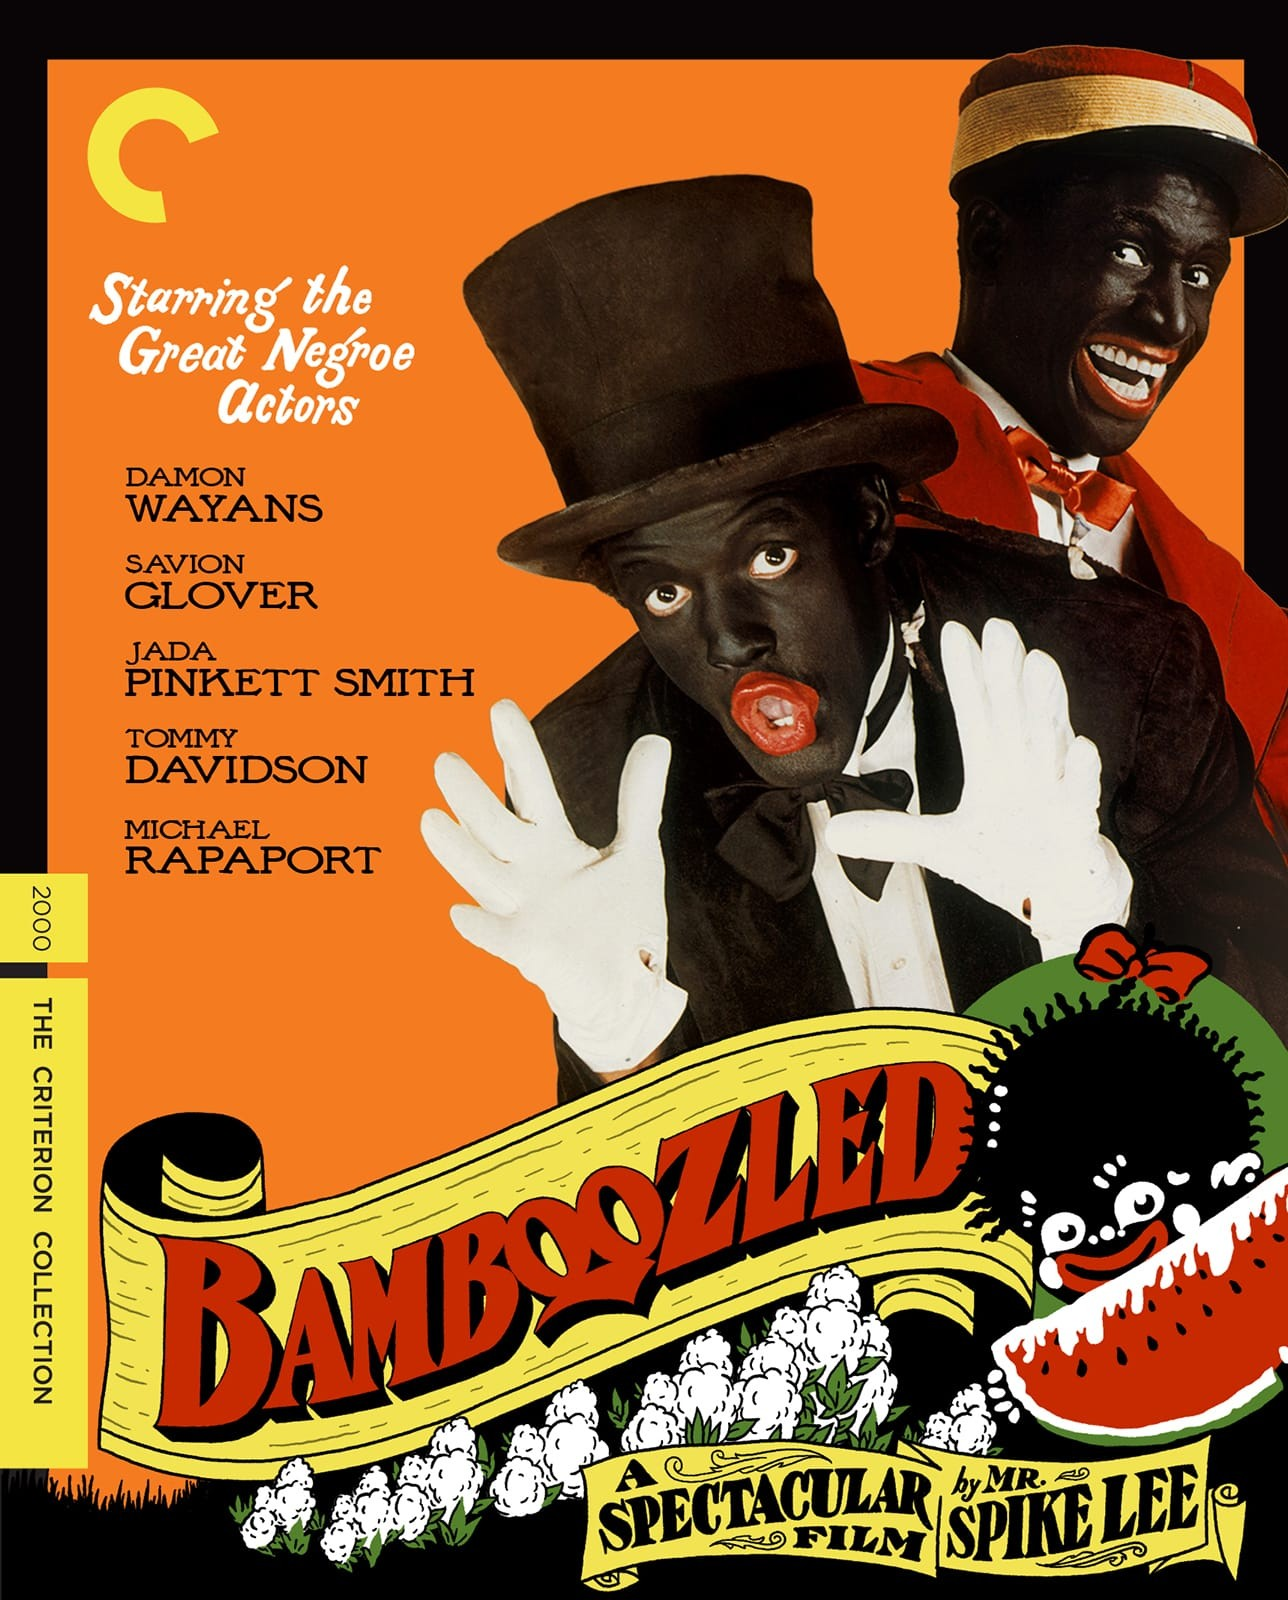 Bamboozled (2000) | The Criterion Collection